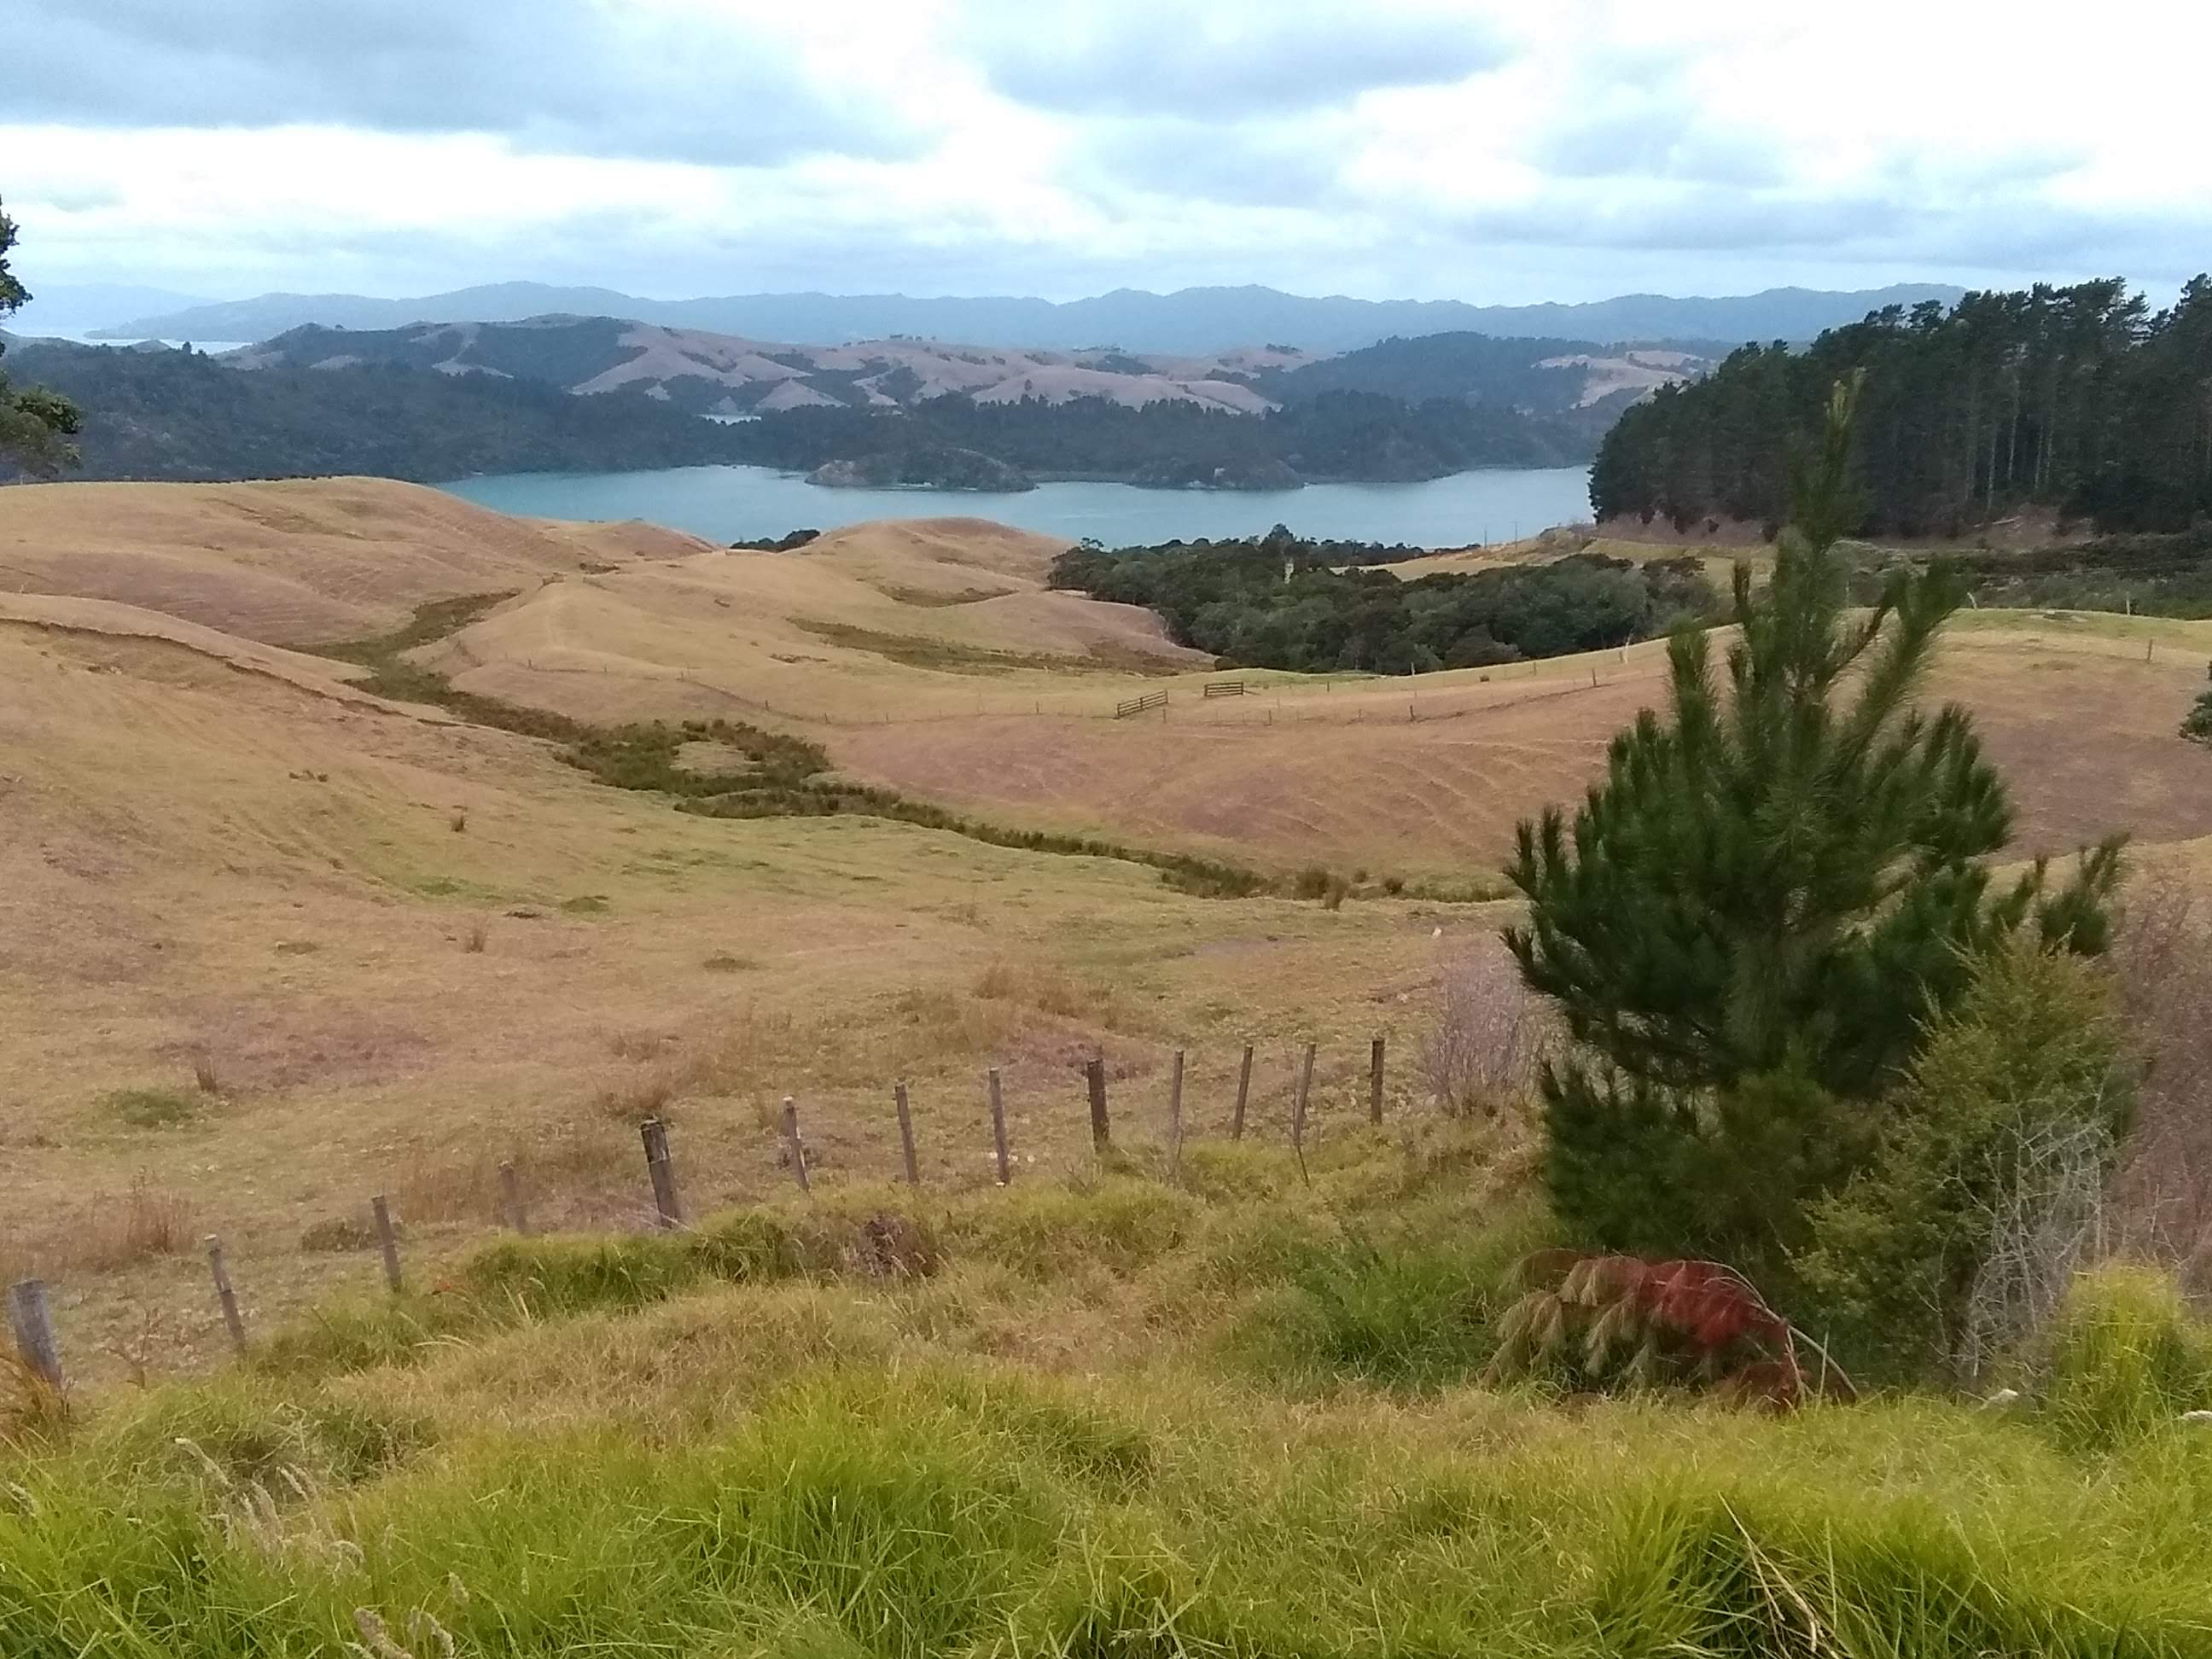 View from the lookout between Coromandel and Whitianga